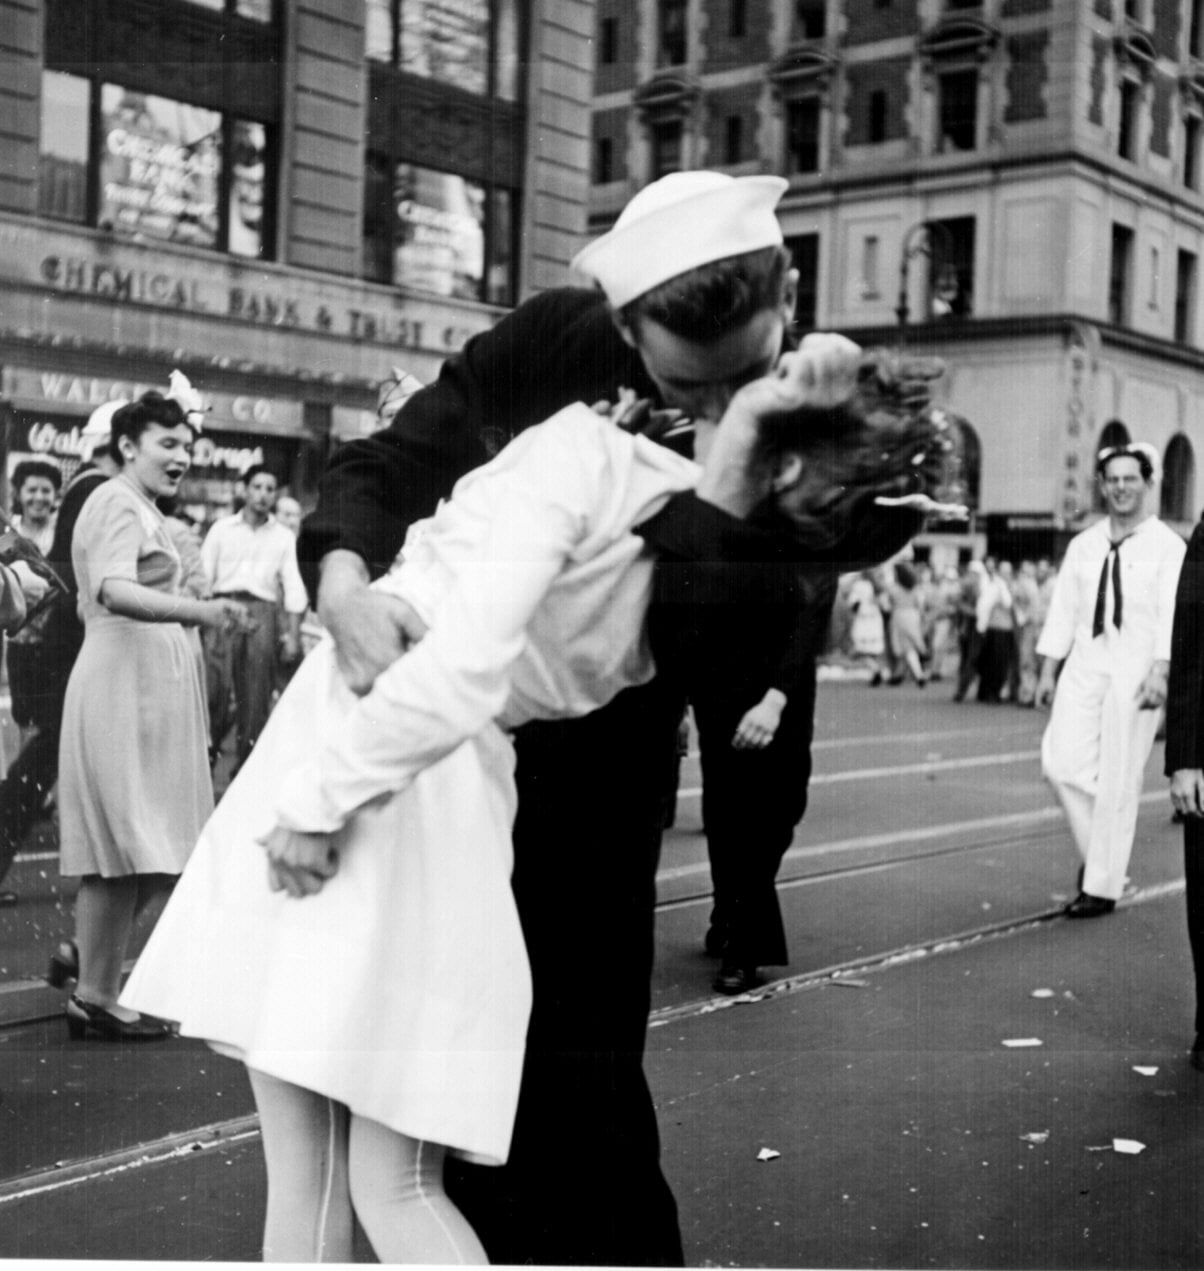 An American sailor kissed a young nurse in this iconic photo from V-J Day in Times Square in NYC on Aug. 14, 1945.